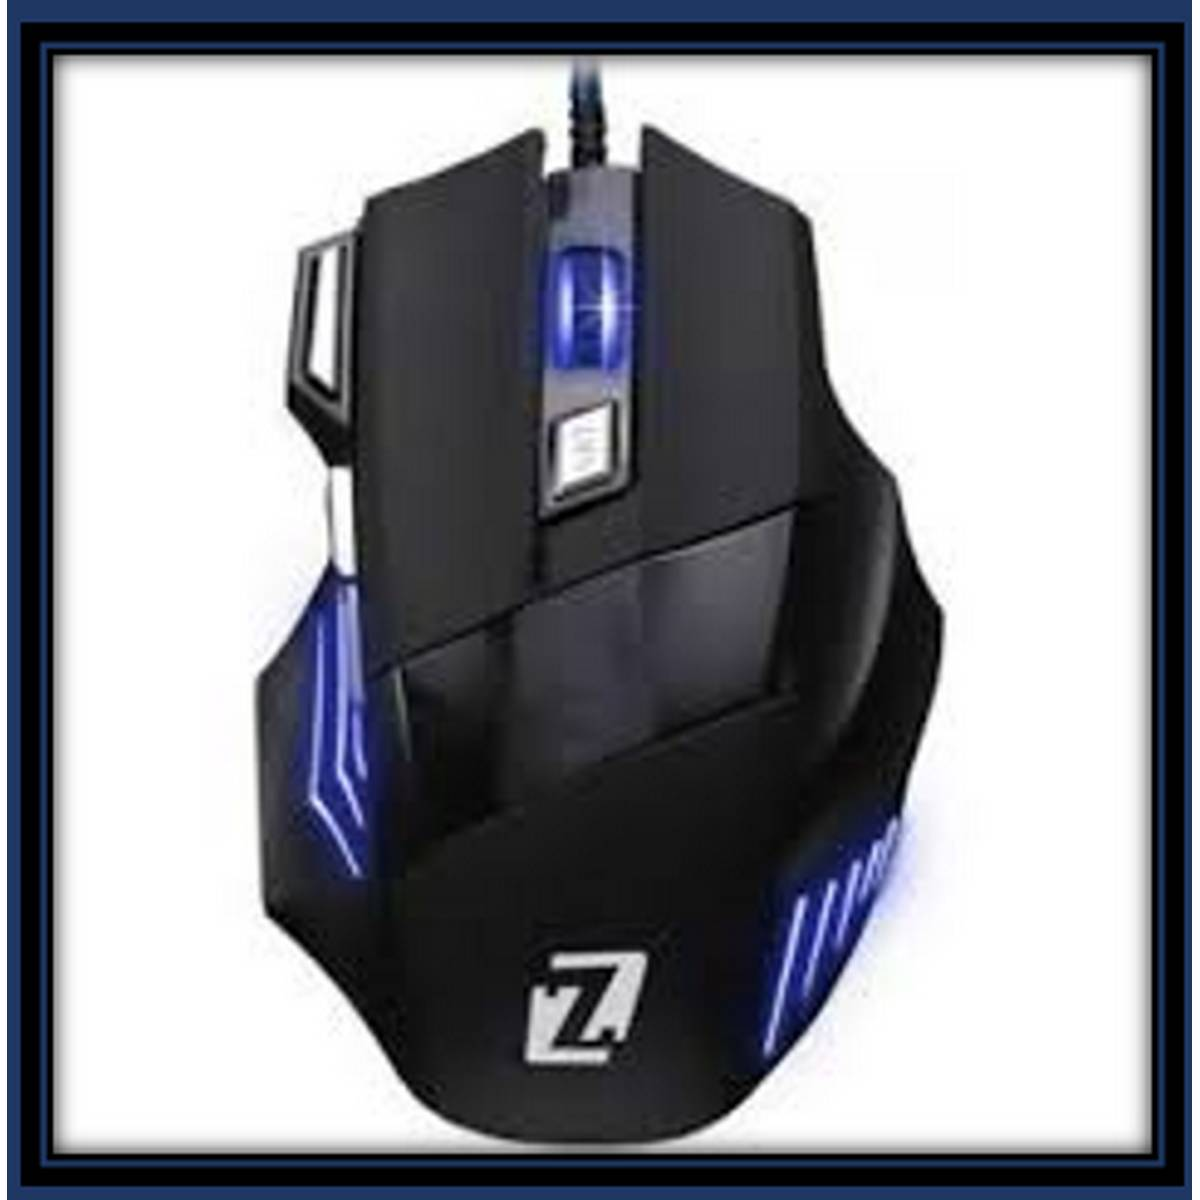 Banda G2 Gaming Mouse 7 Buttons RGB 5500DPI 7D Optical USB Mouse